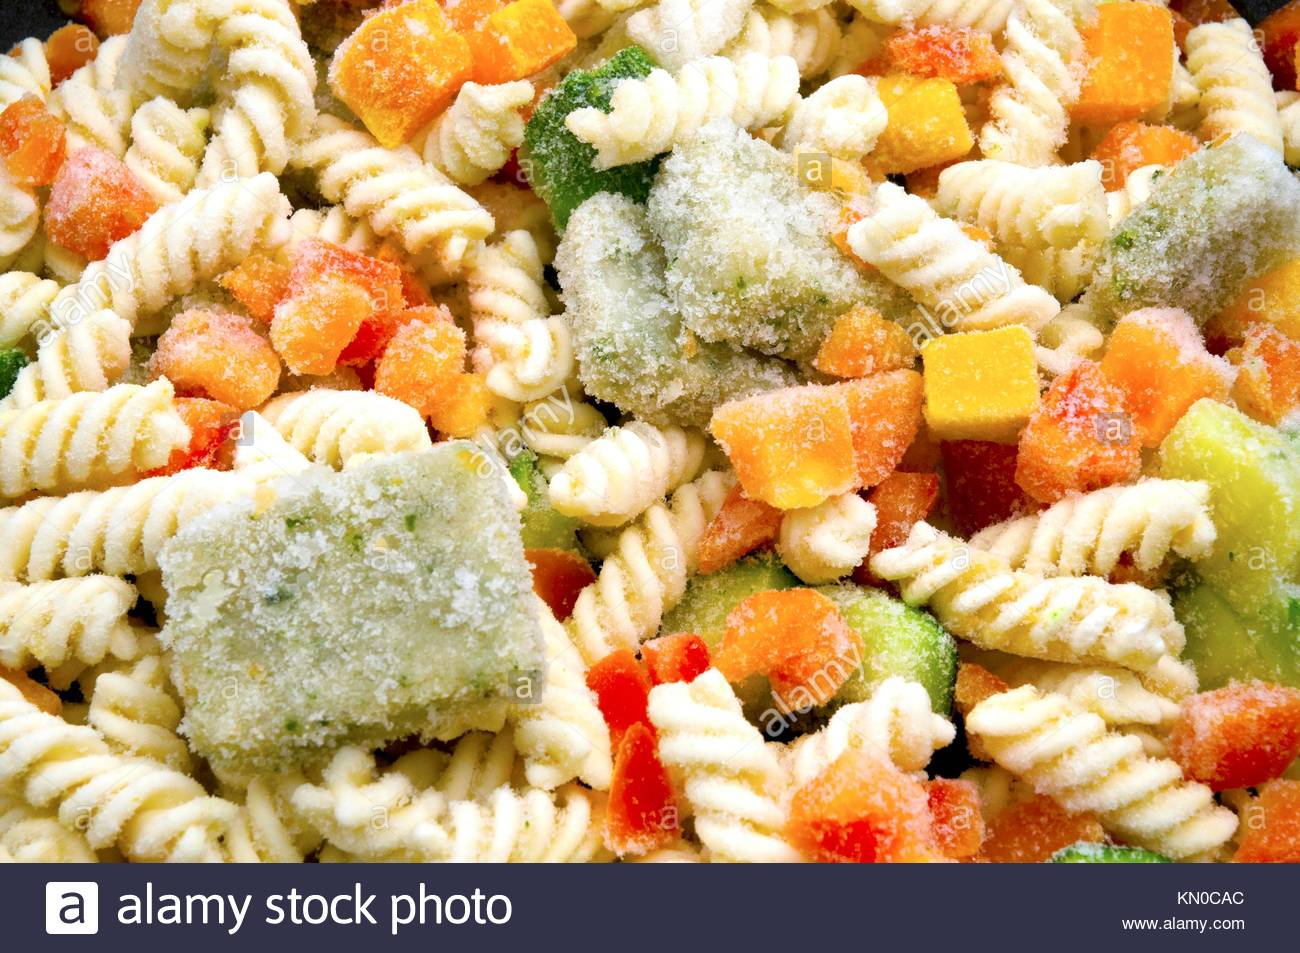 Frozen ready cooked pasta Stock Photo